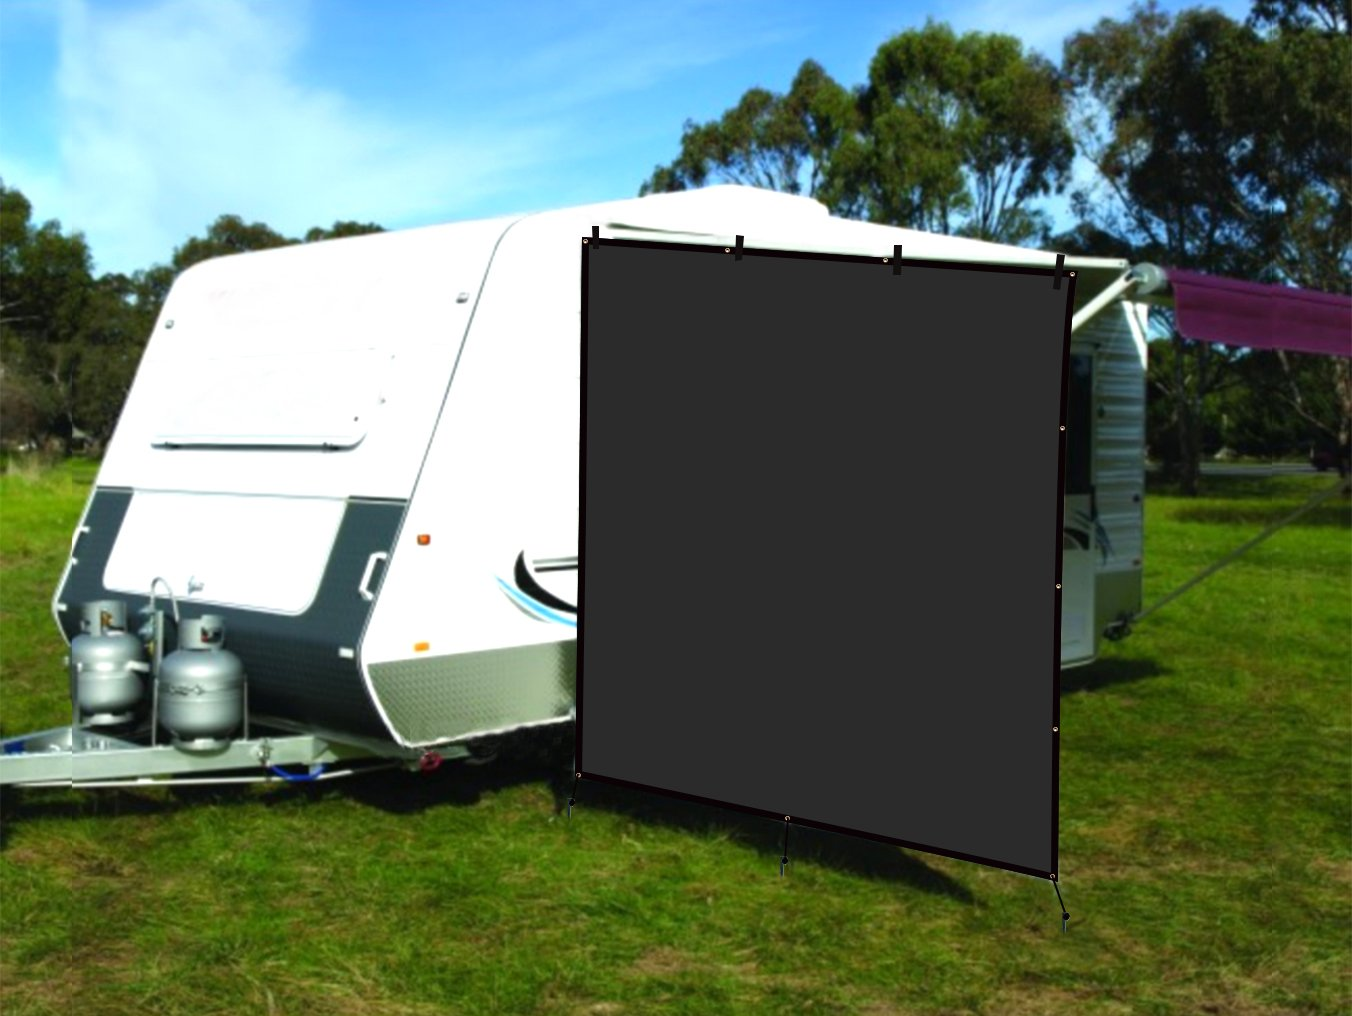 CAMWINGS RV Awning Privacy Screen Shade Panel Kit Side Sunblock Shade Drop 8 x 8ft, Black